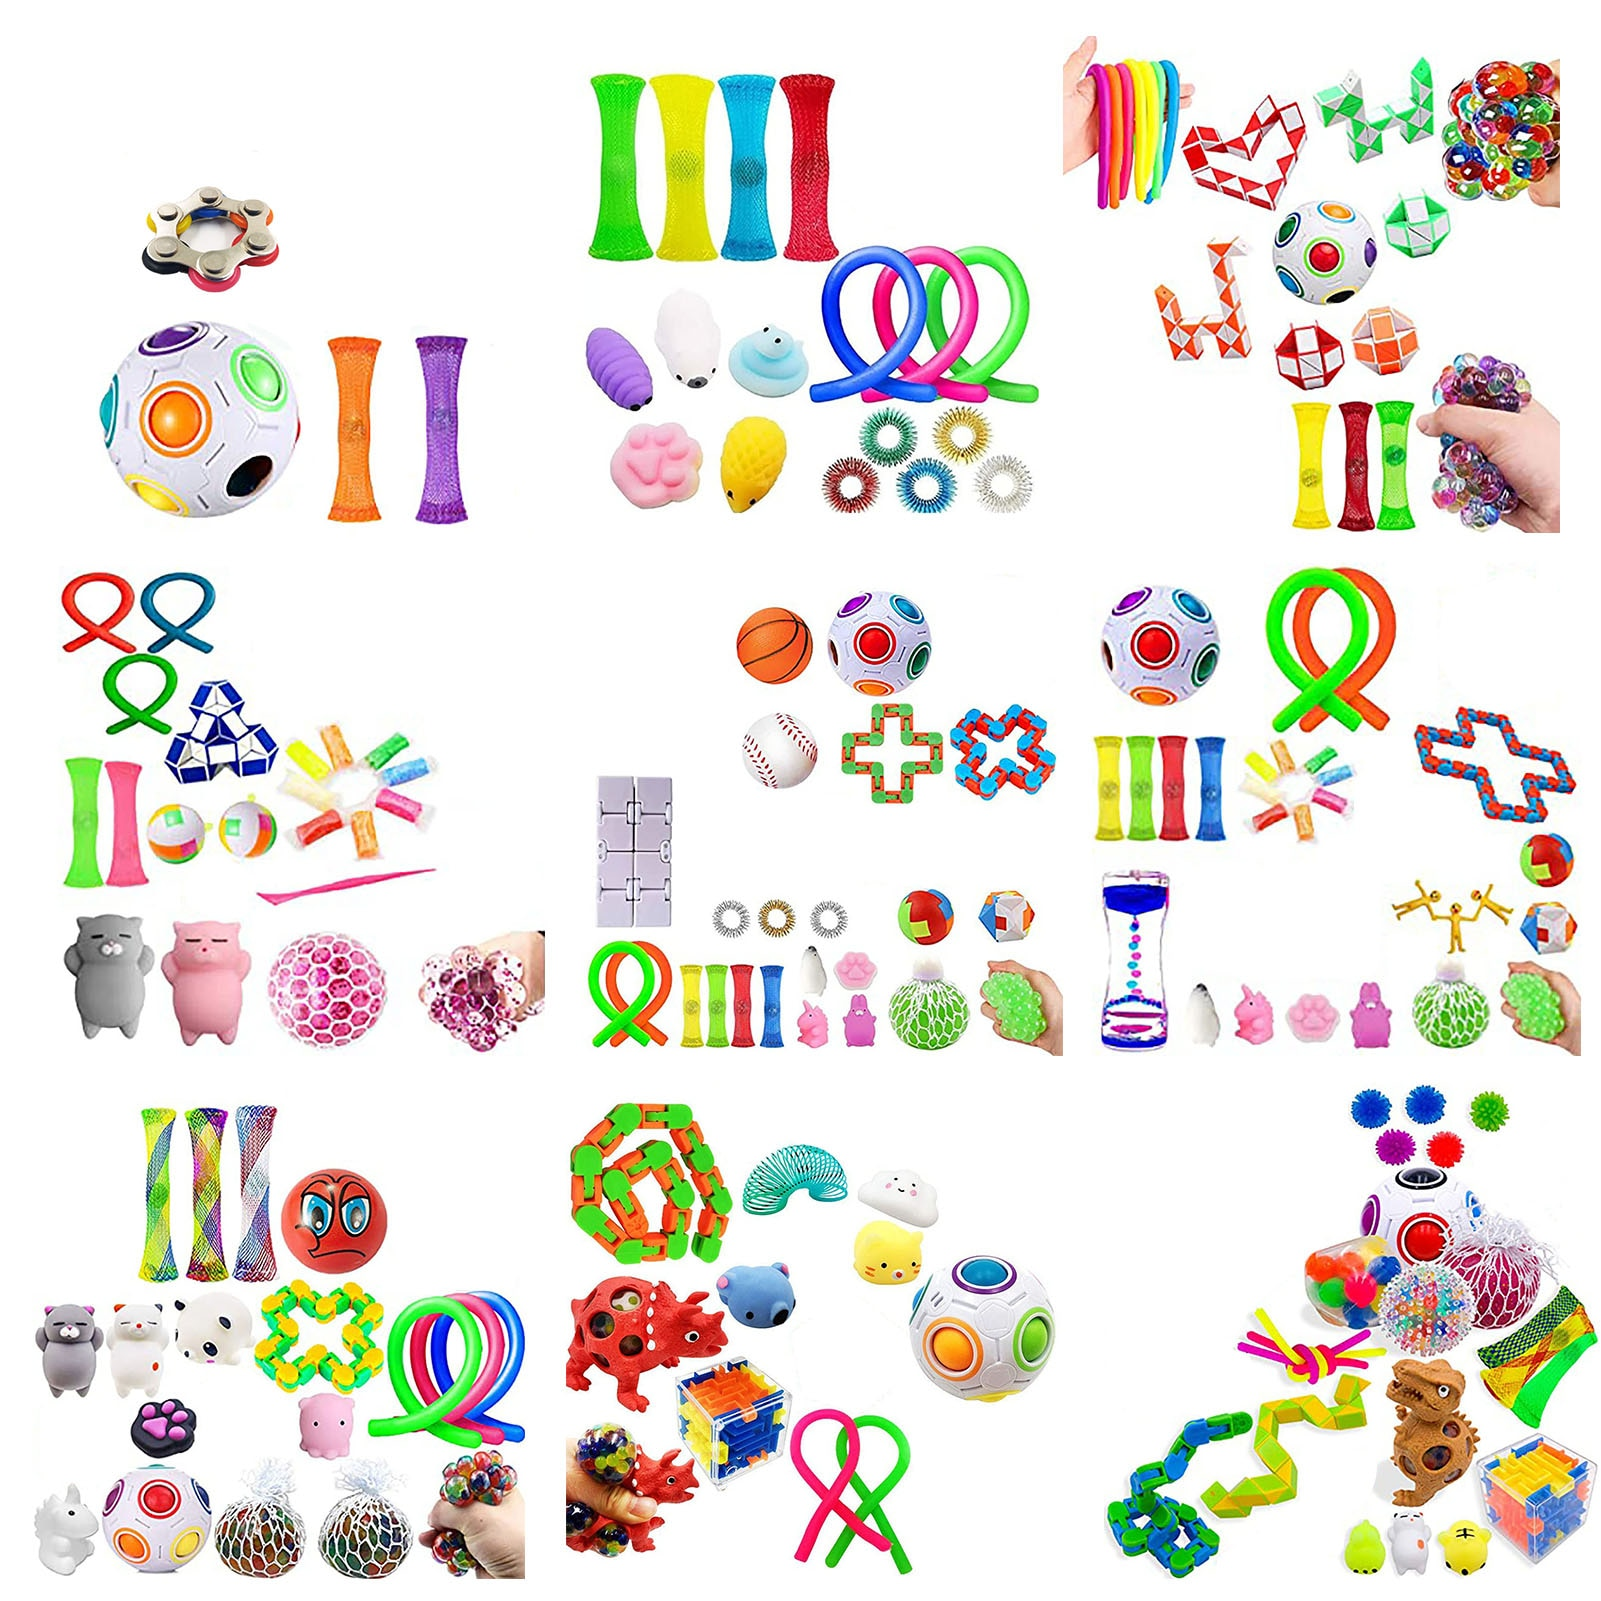 60PCS Fidget Simple Dimple Toy Decompression Toys Kids Adults Early Educational Autism Special Need enlarge